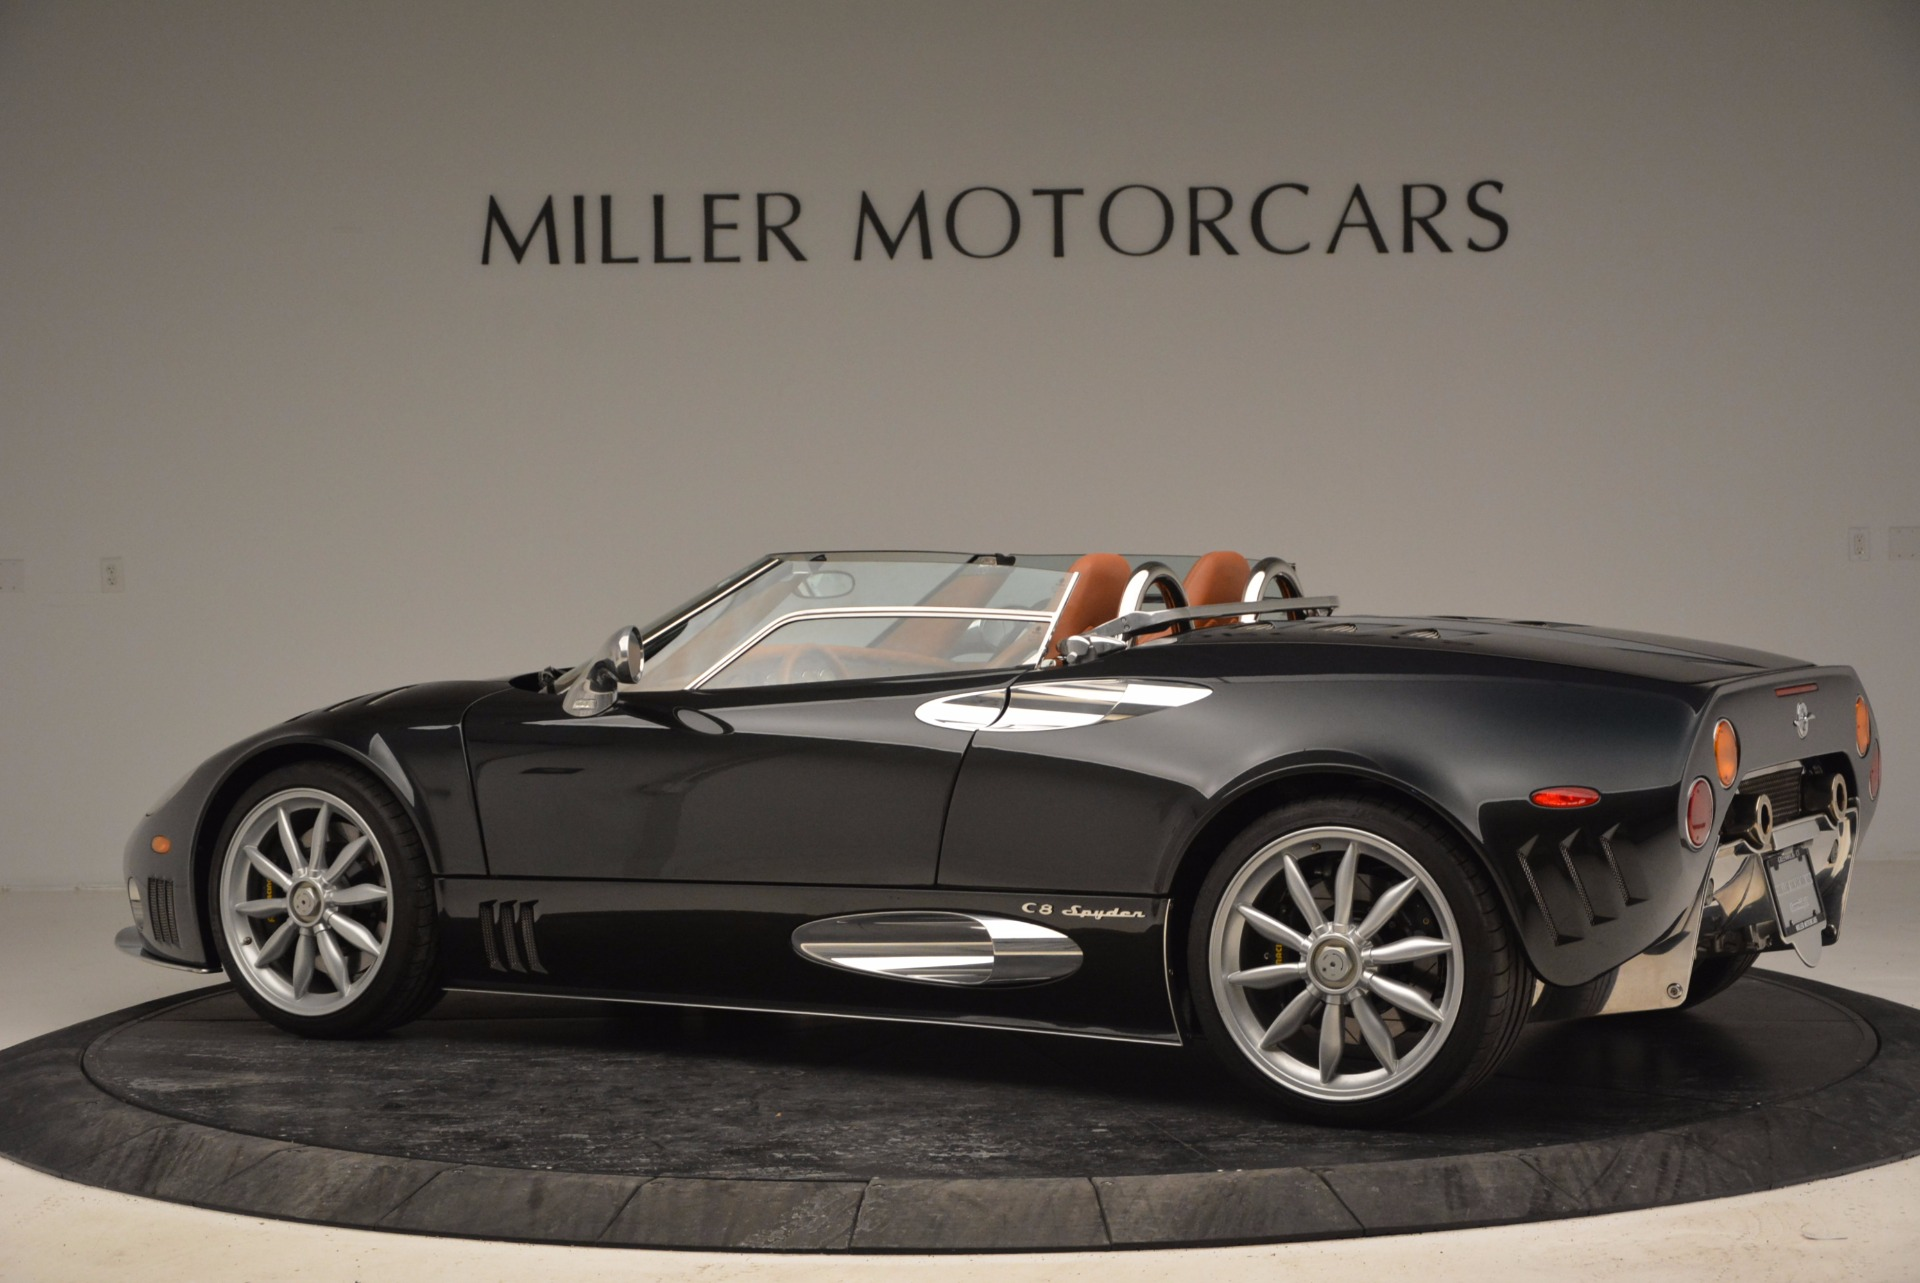 Used 2006 Spyker C8 Spyder  For Sale In Greenwich, CT. Alfa Romeo of Greenwich, 7157 1007_p6